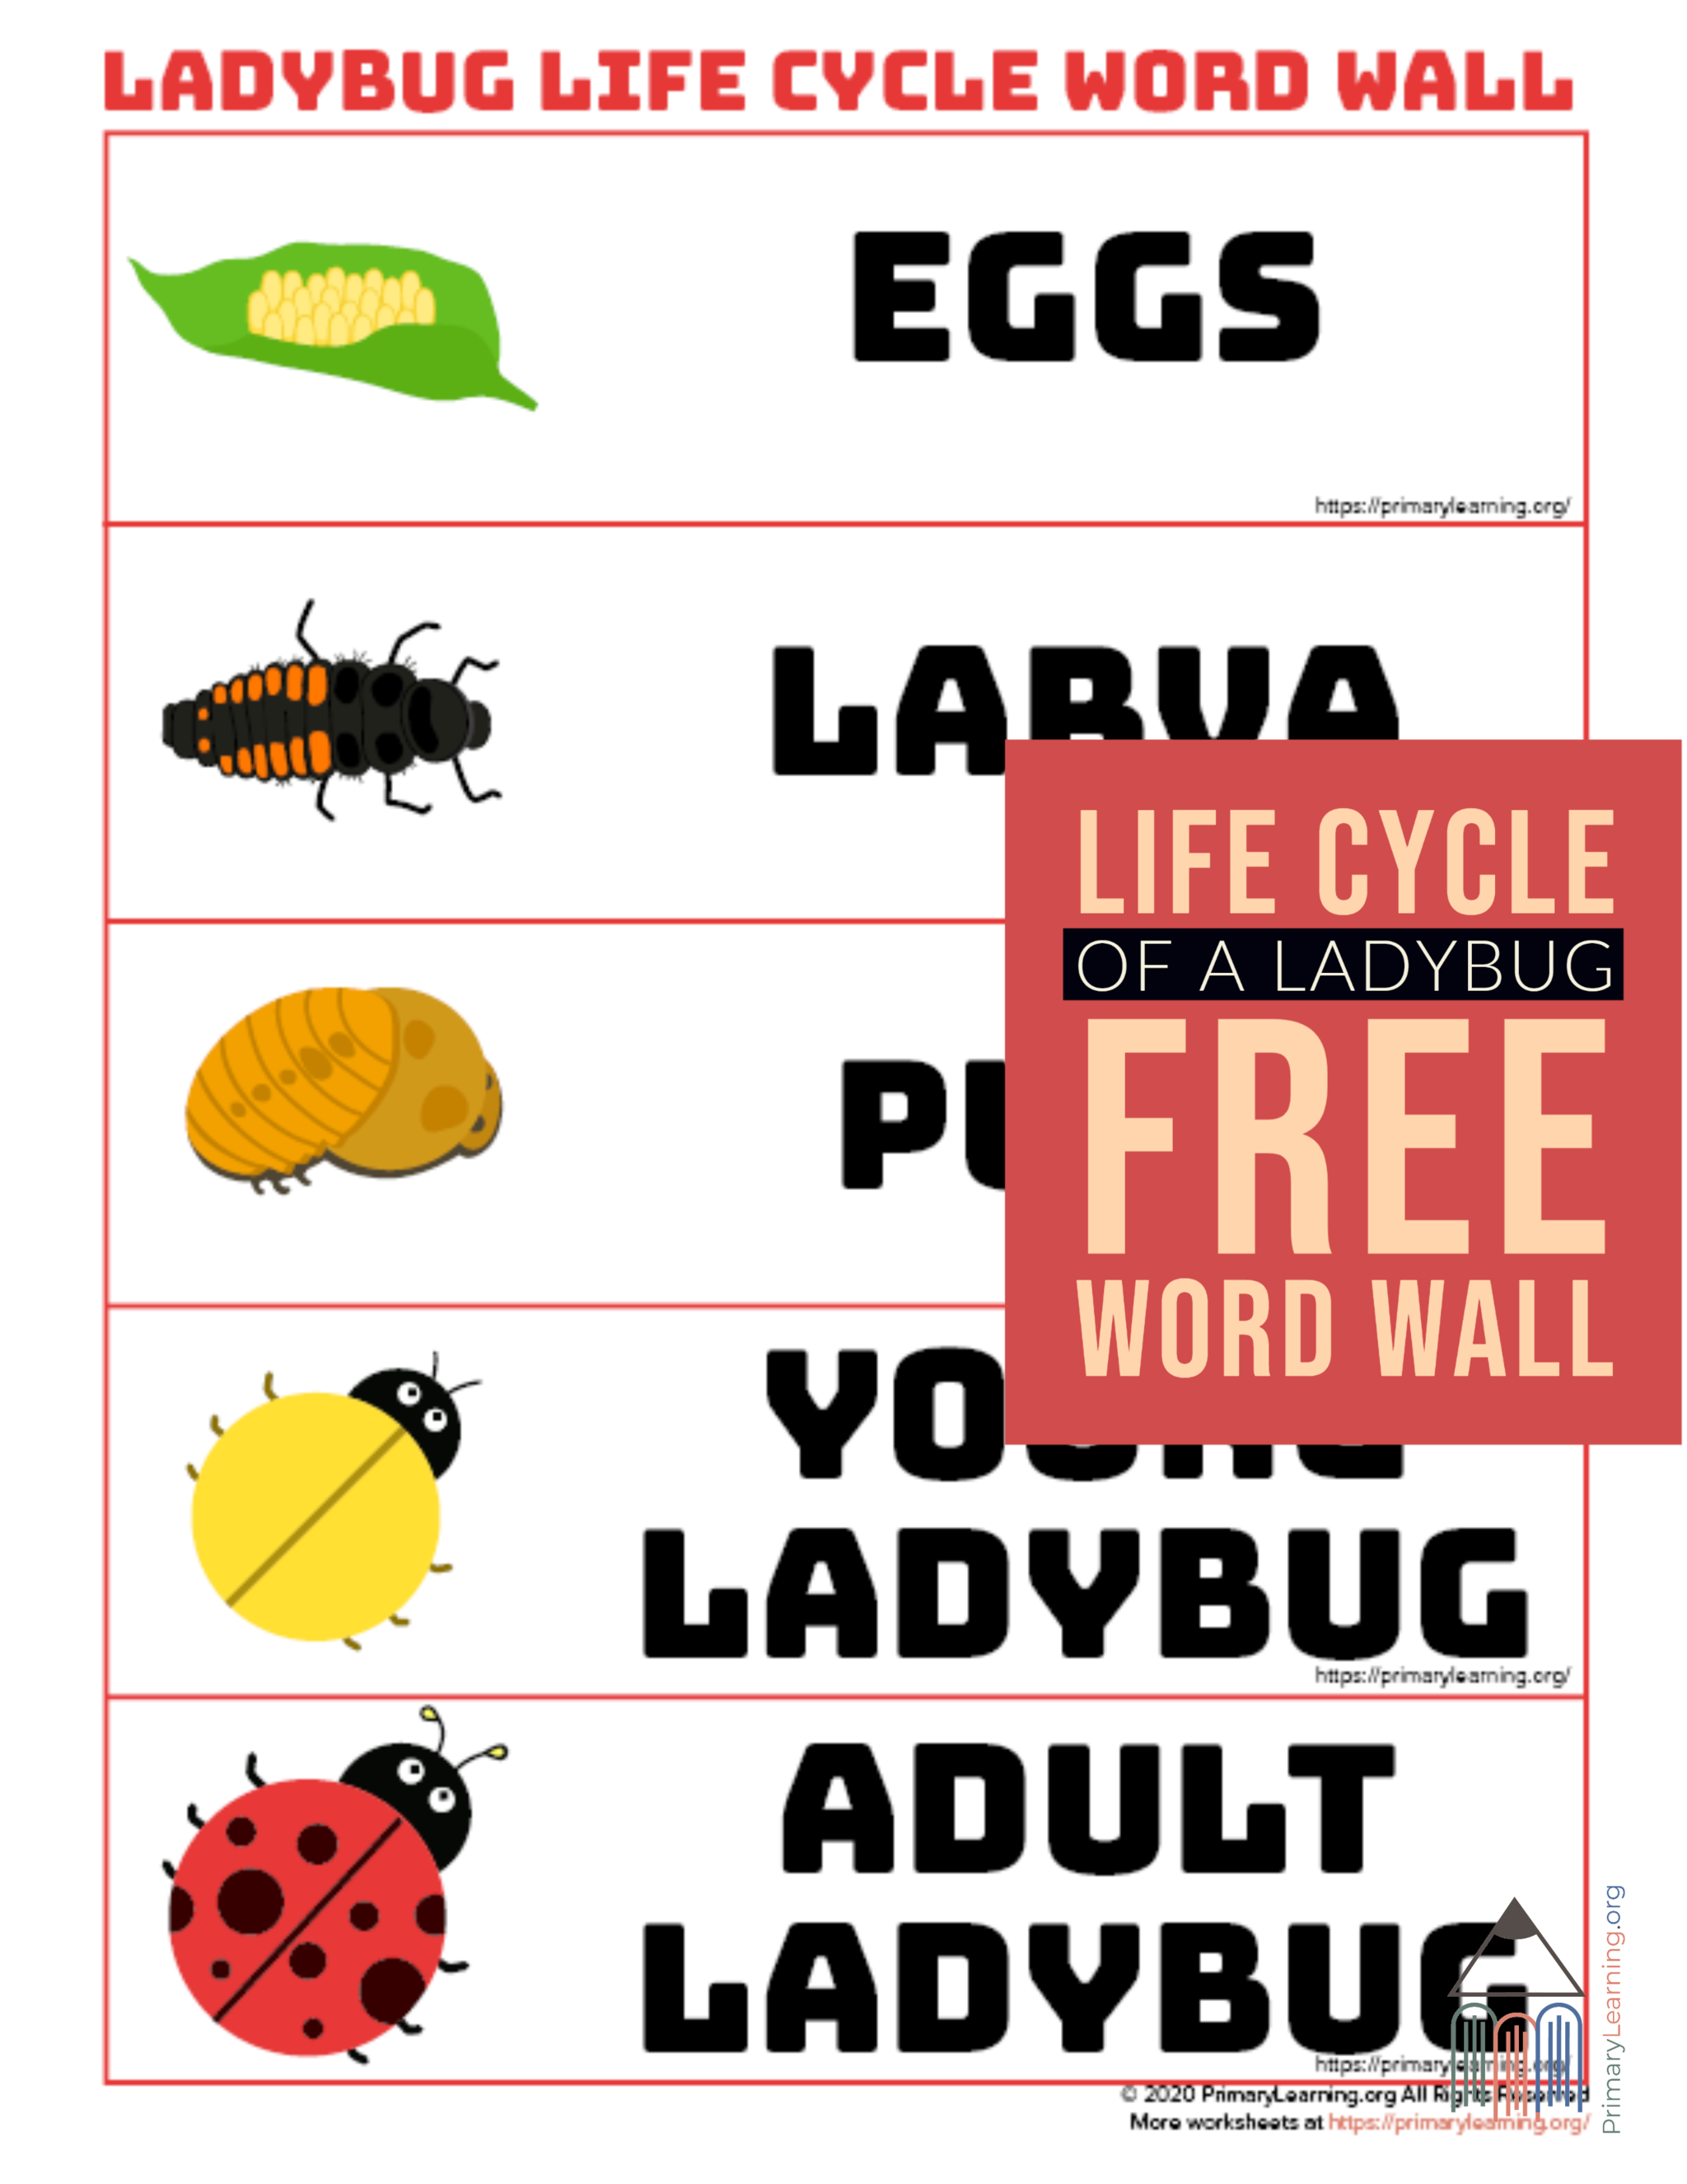 Ladybug Life Cycle Word Wall